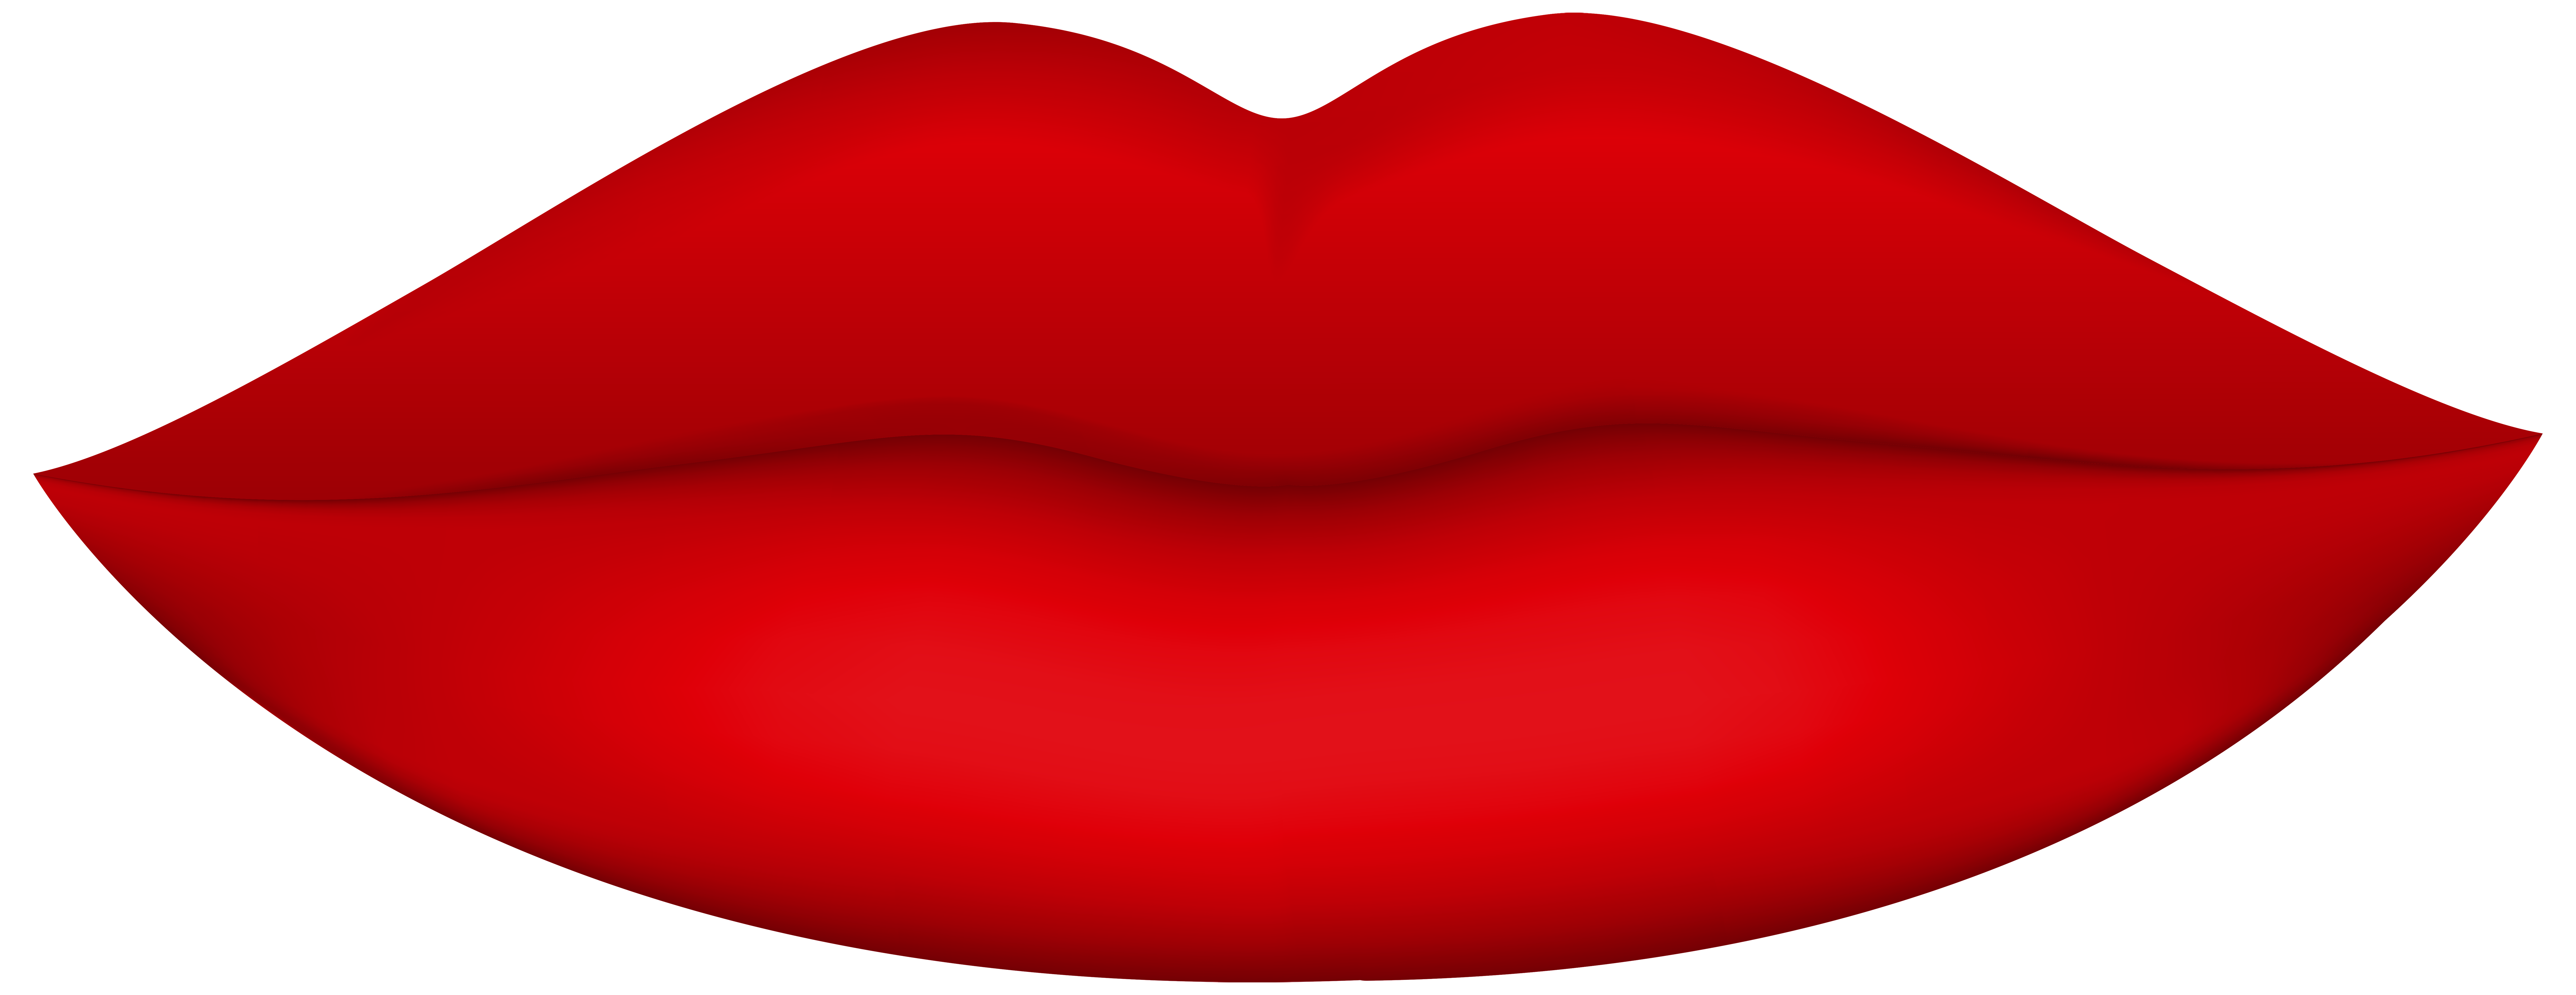 Clipart Lips & Lips Clip Art Images.